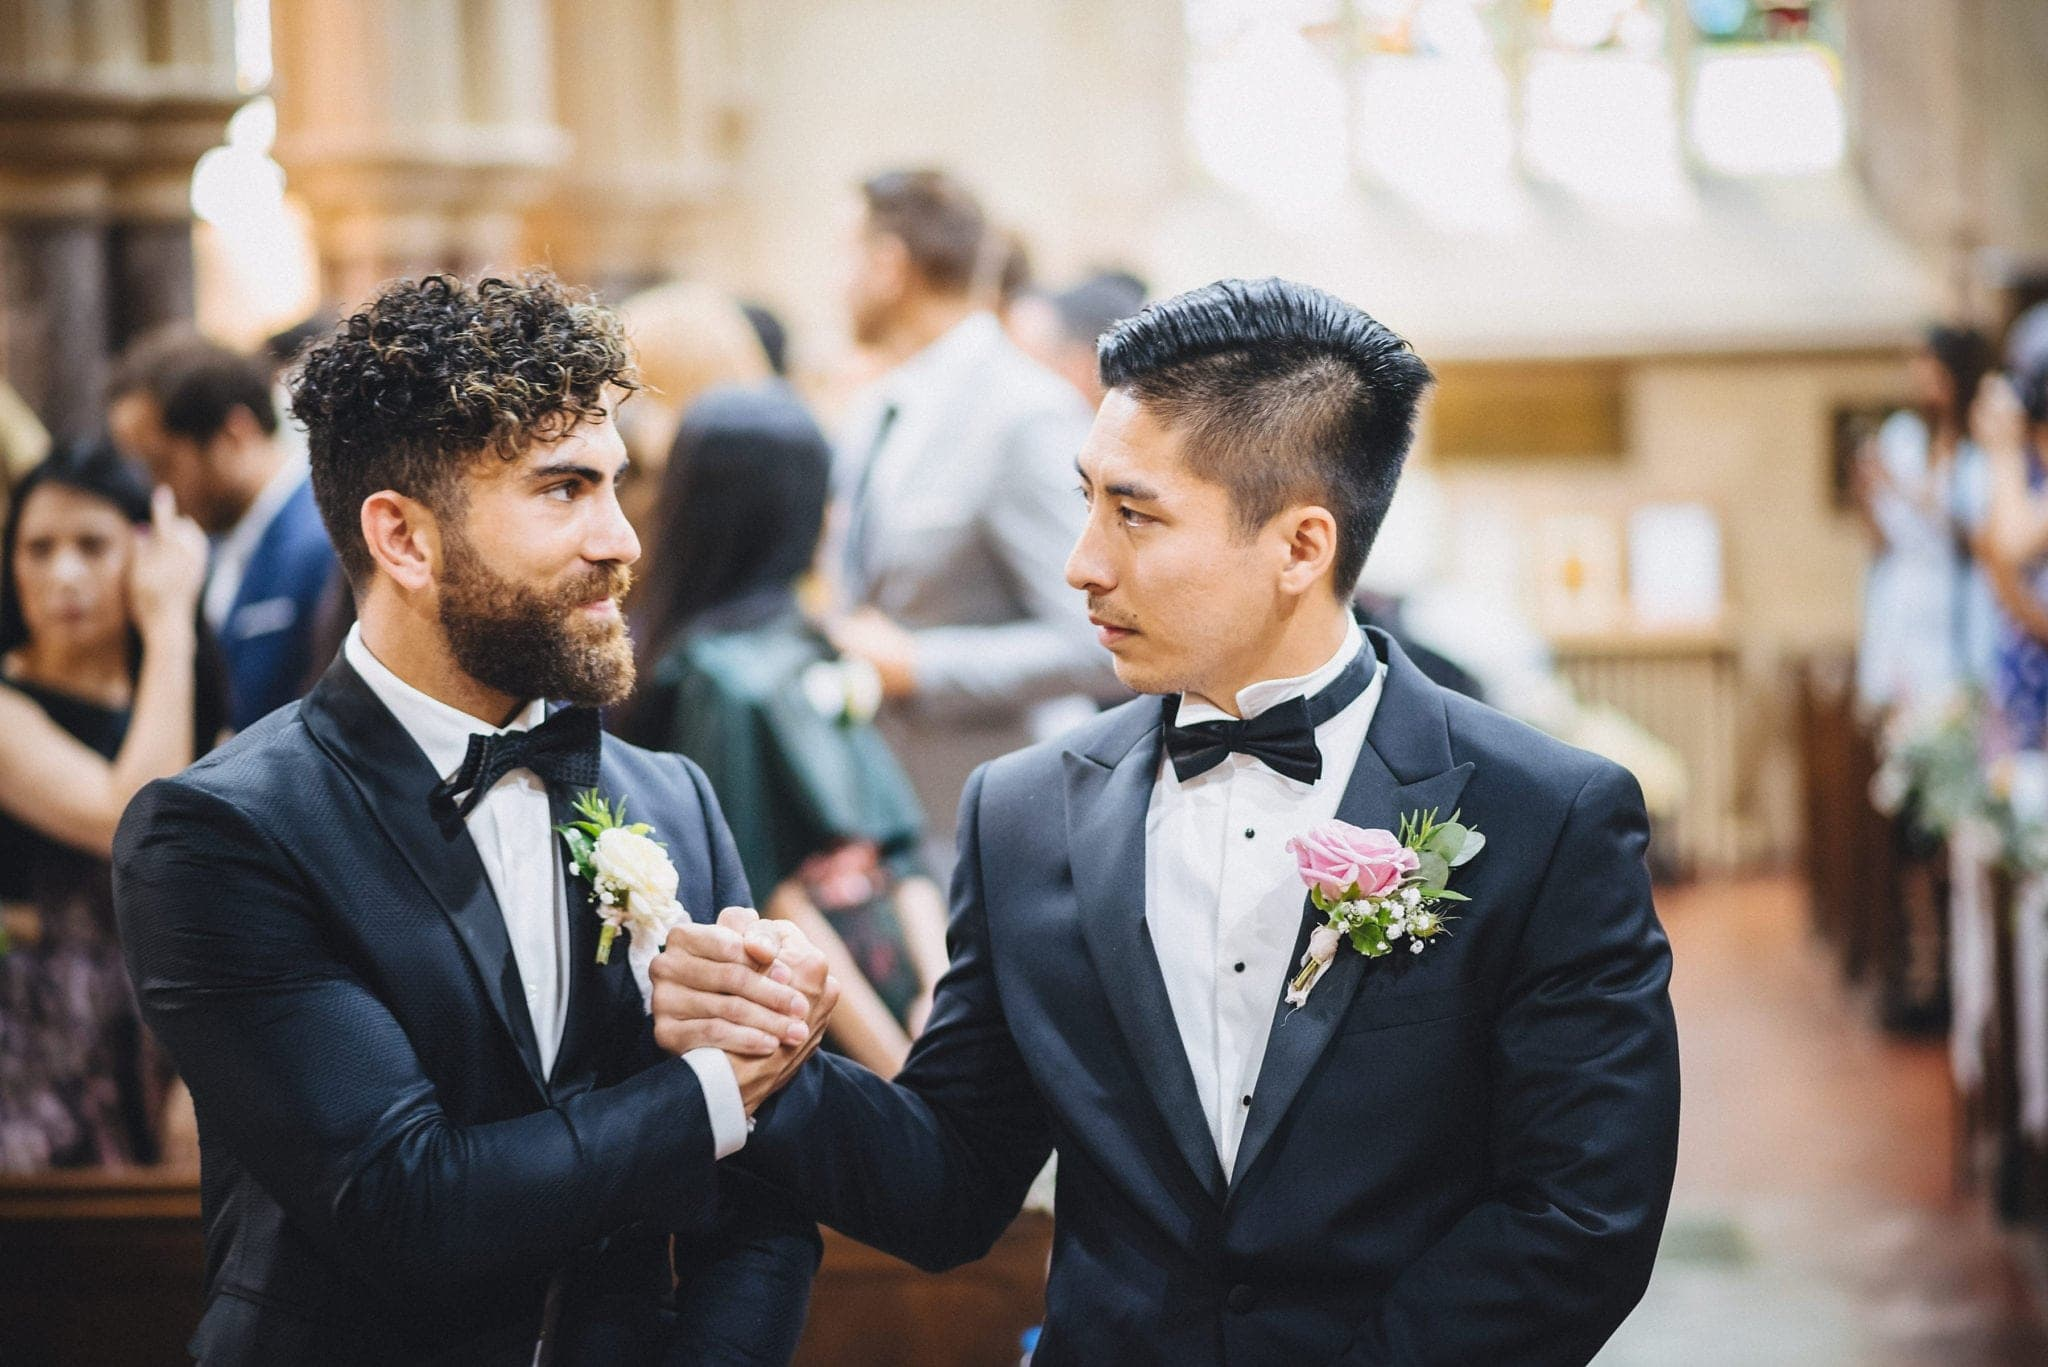 Groom at best man clasp hands while waiting for bride at church